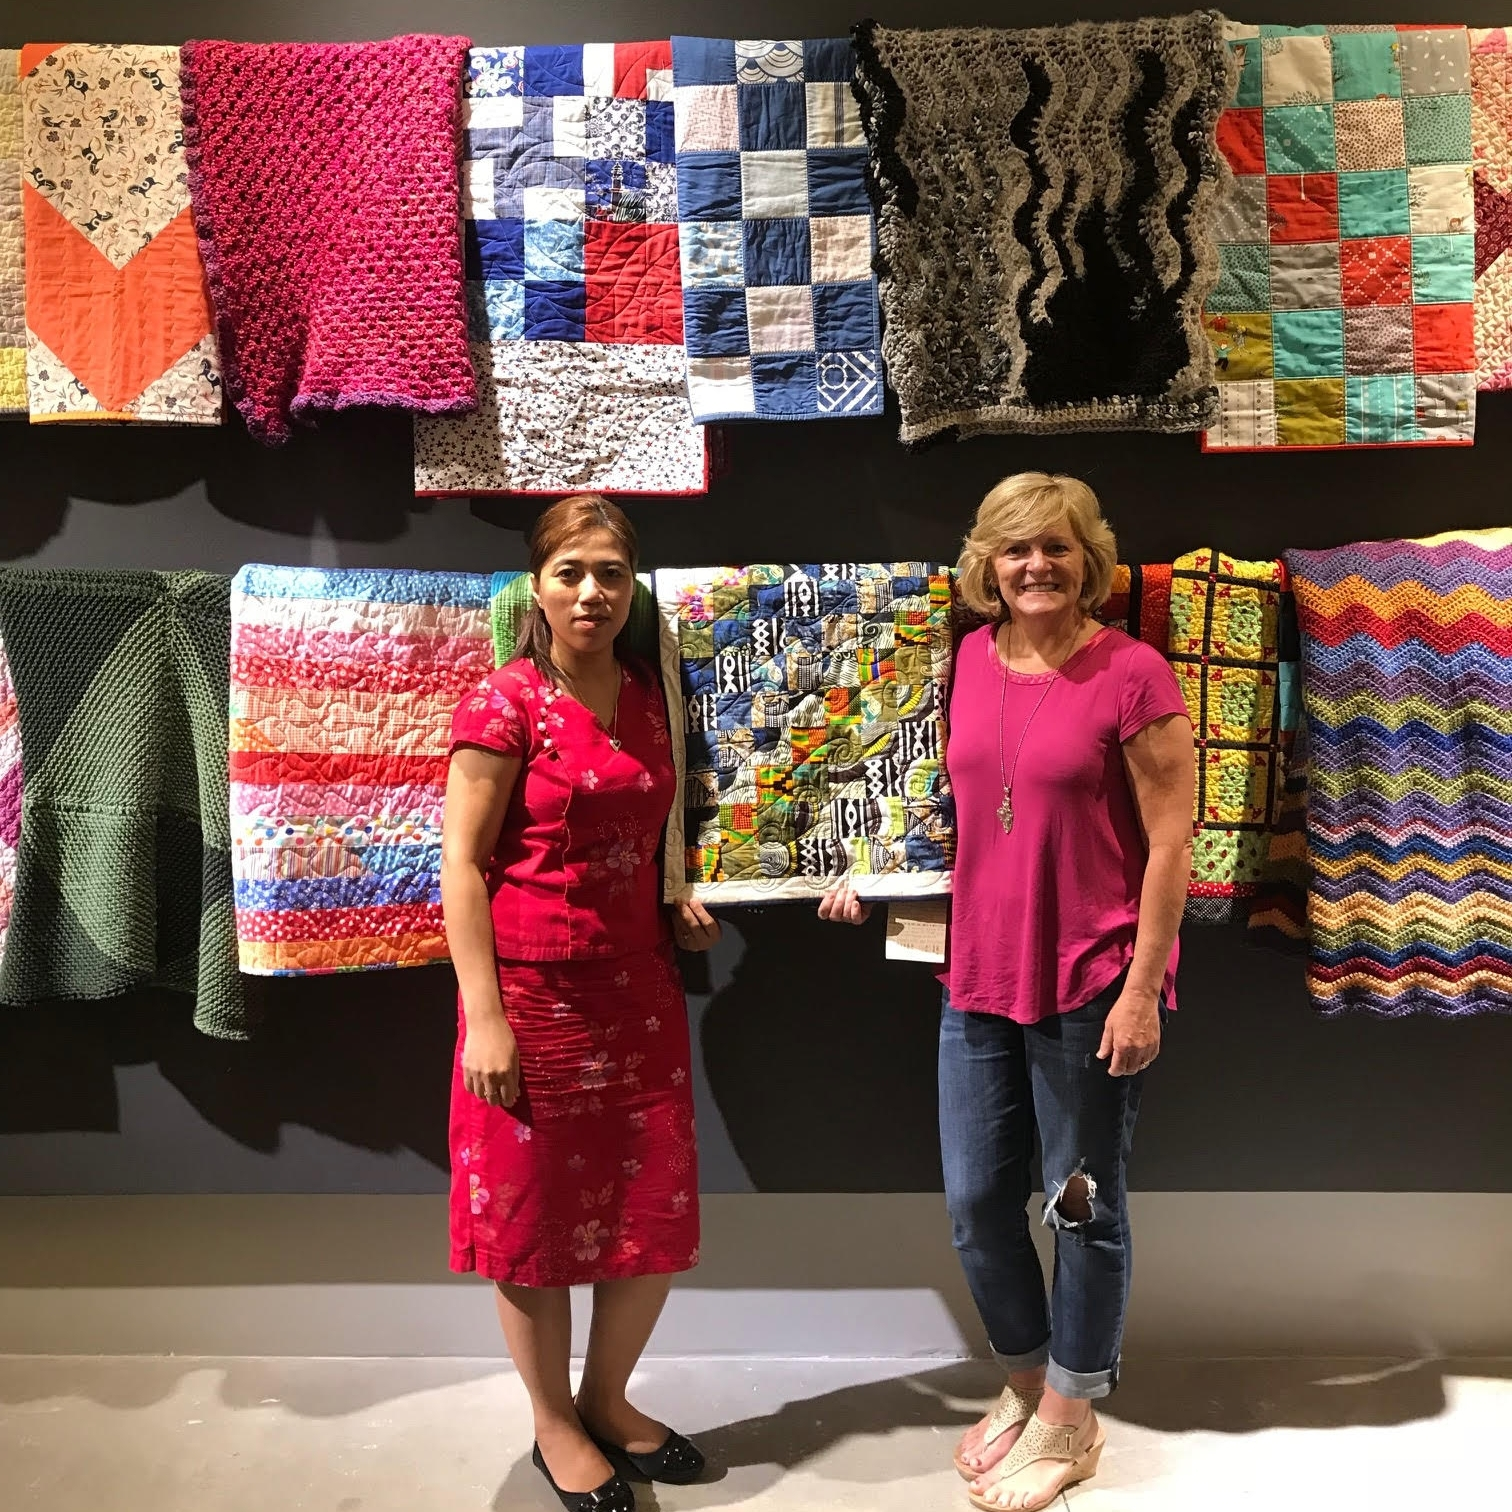 Kay (left) and Elizabeth (right) of Tandem Quilting